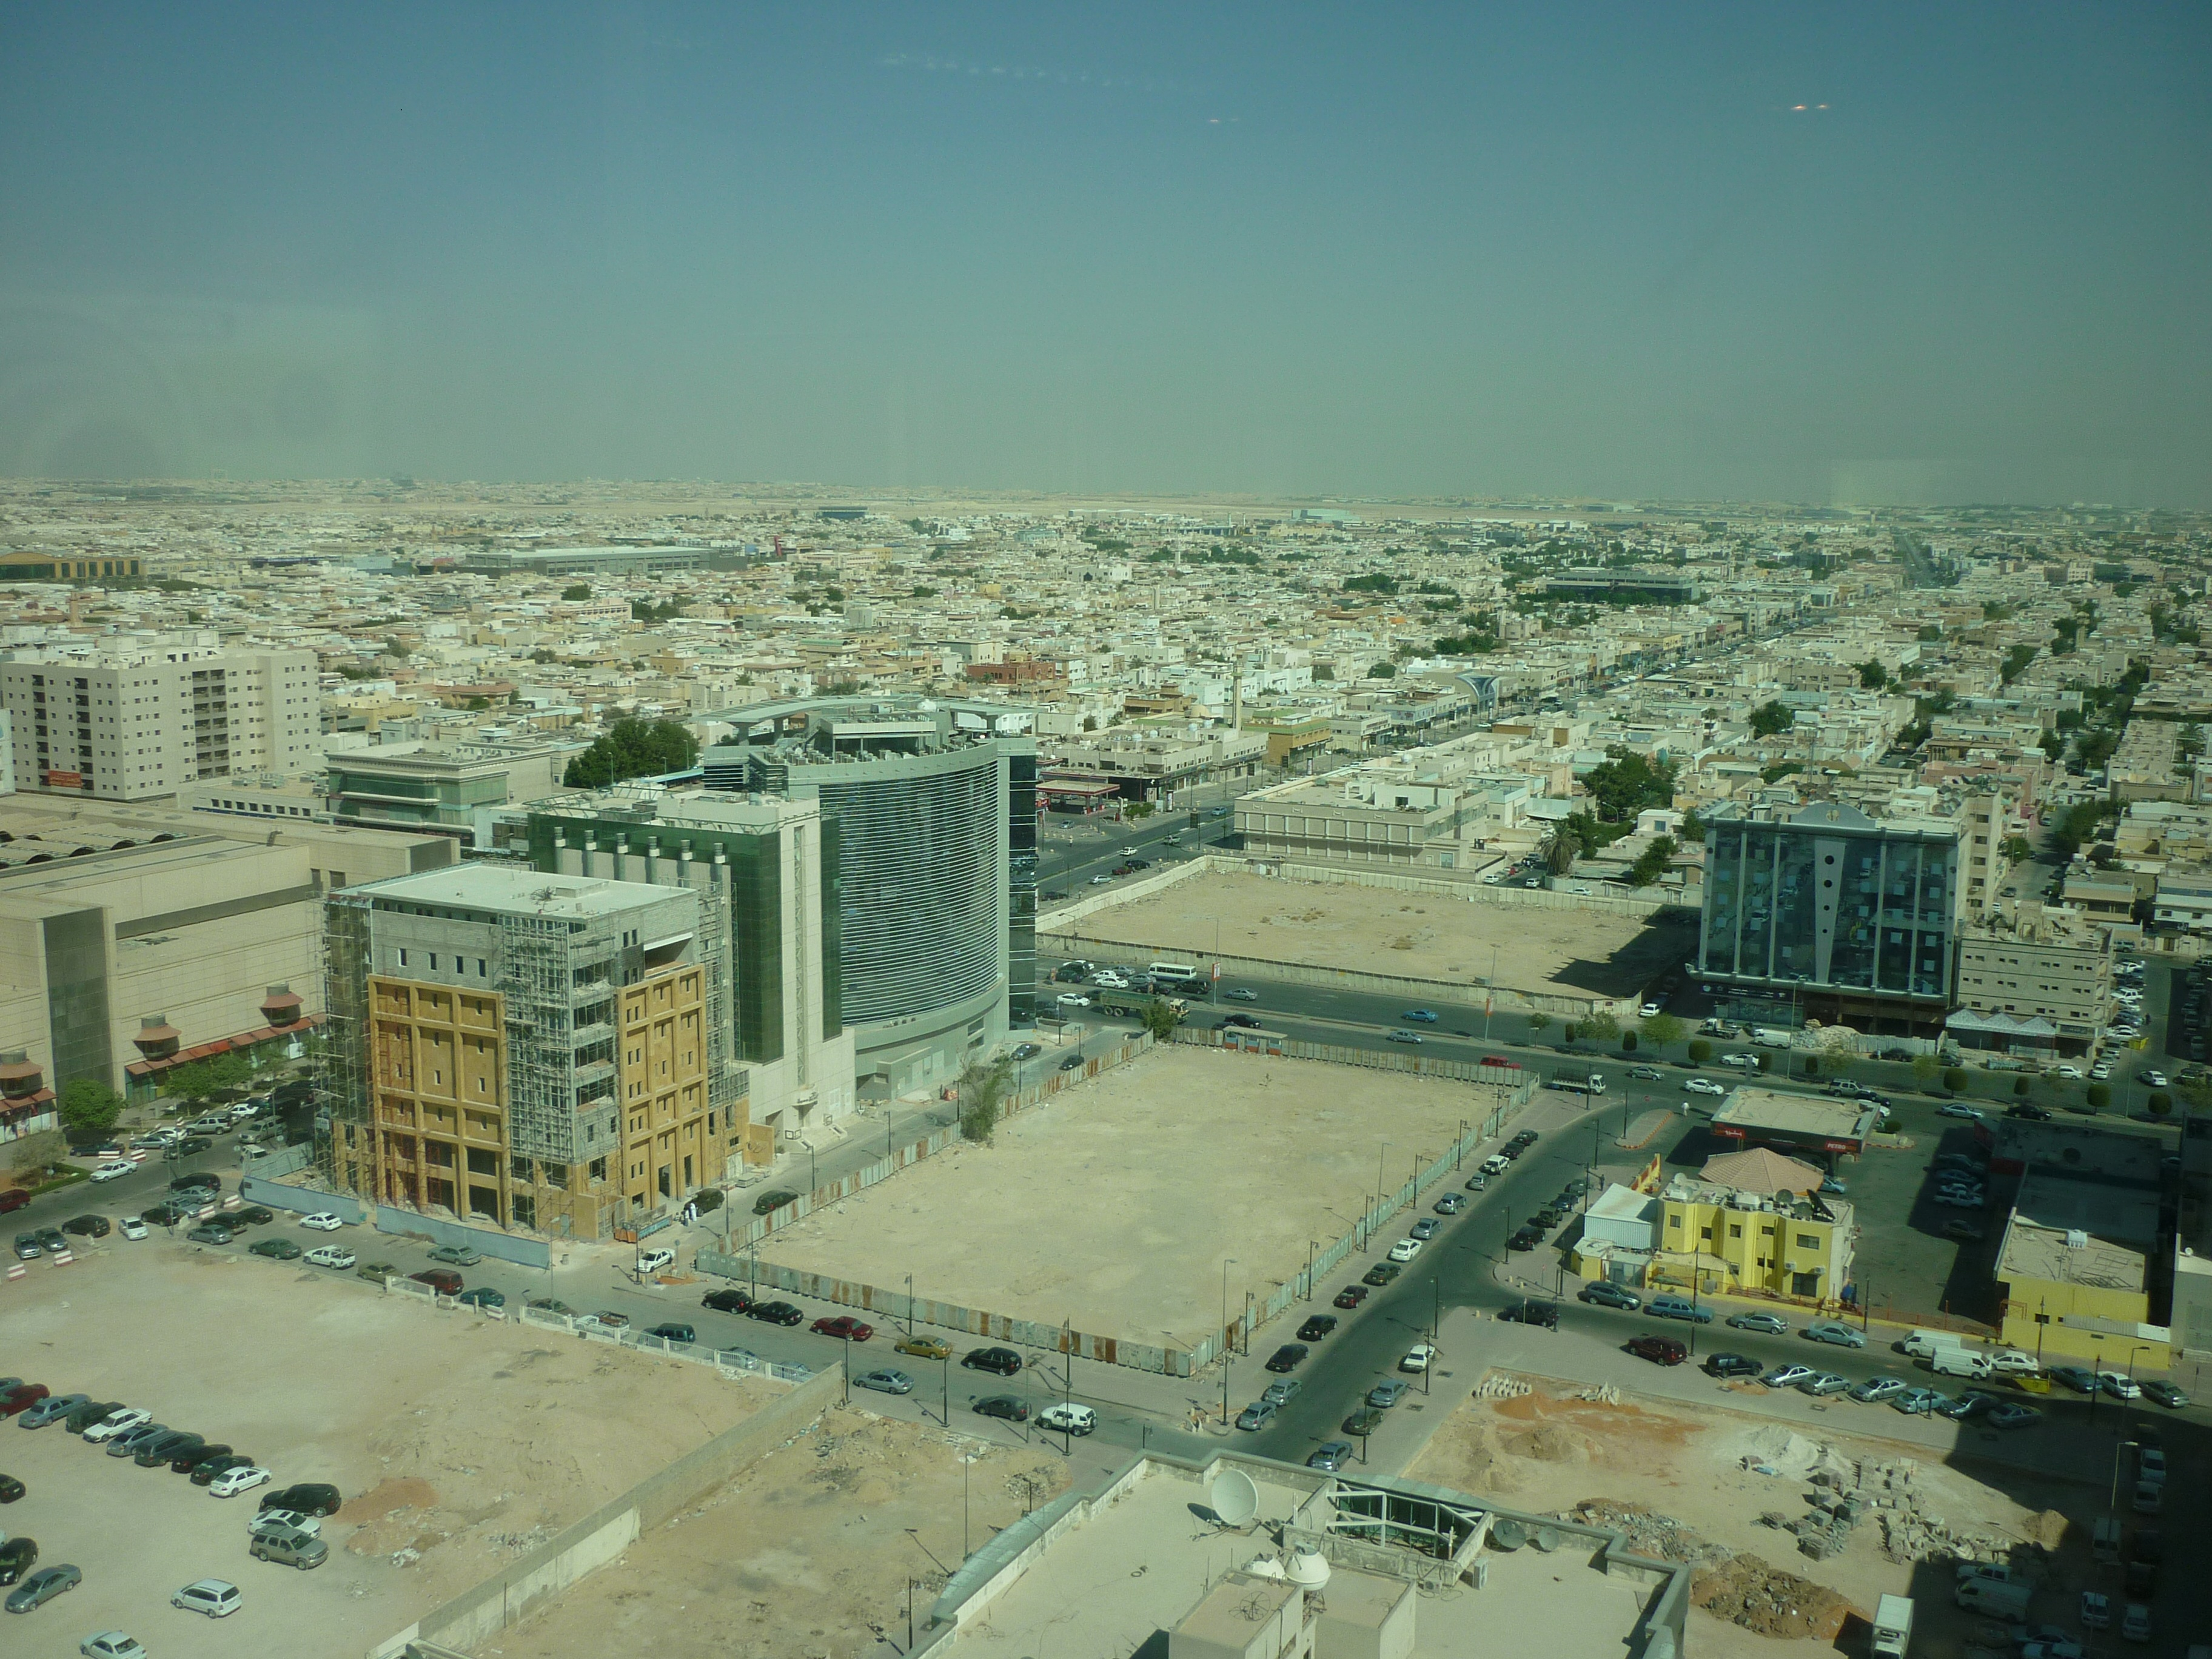 Riaz city in saudi arabia